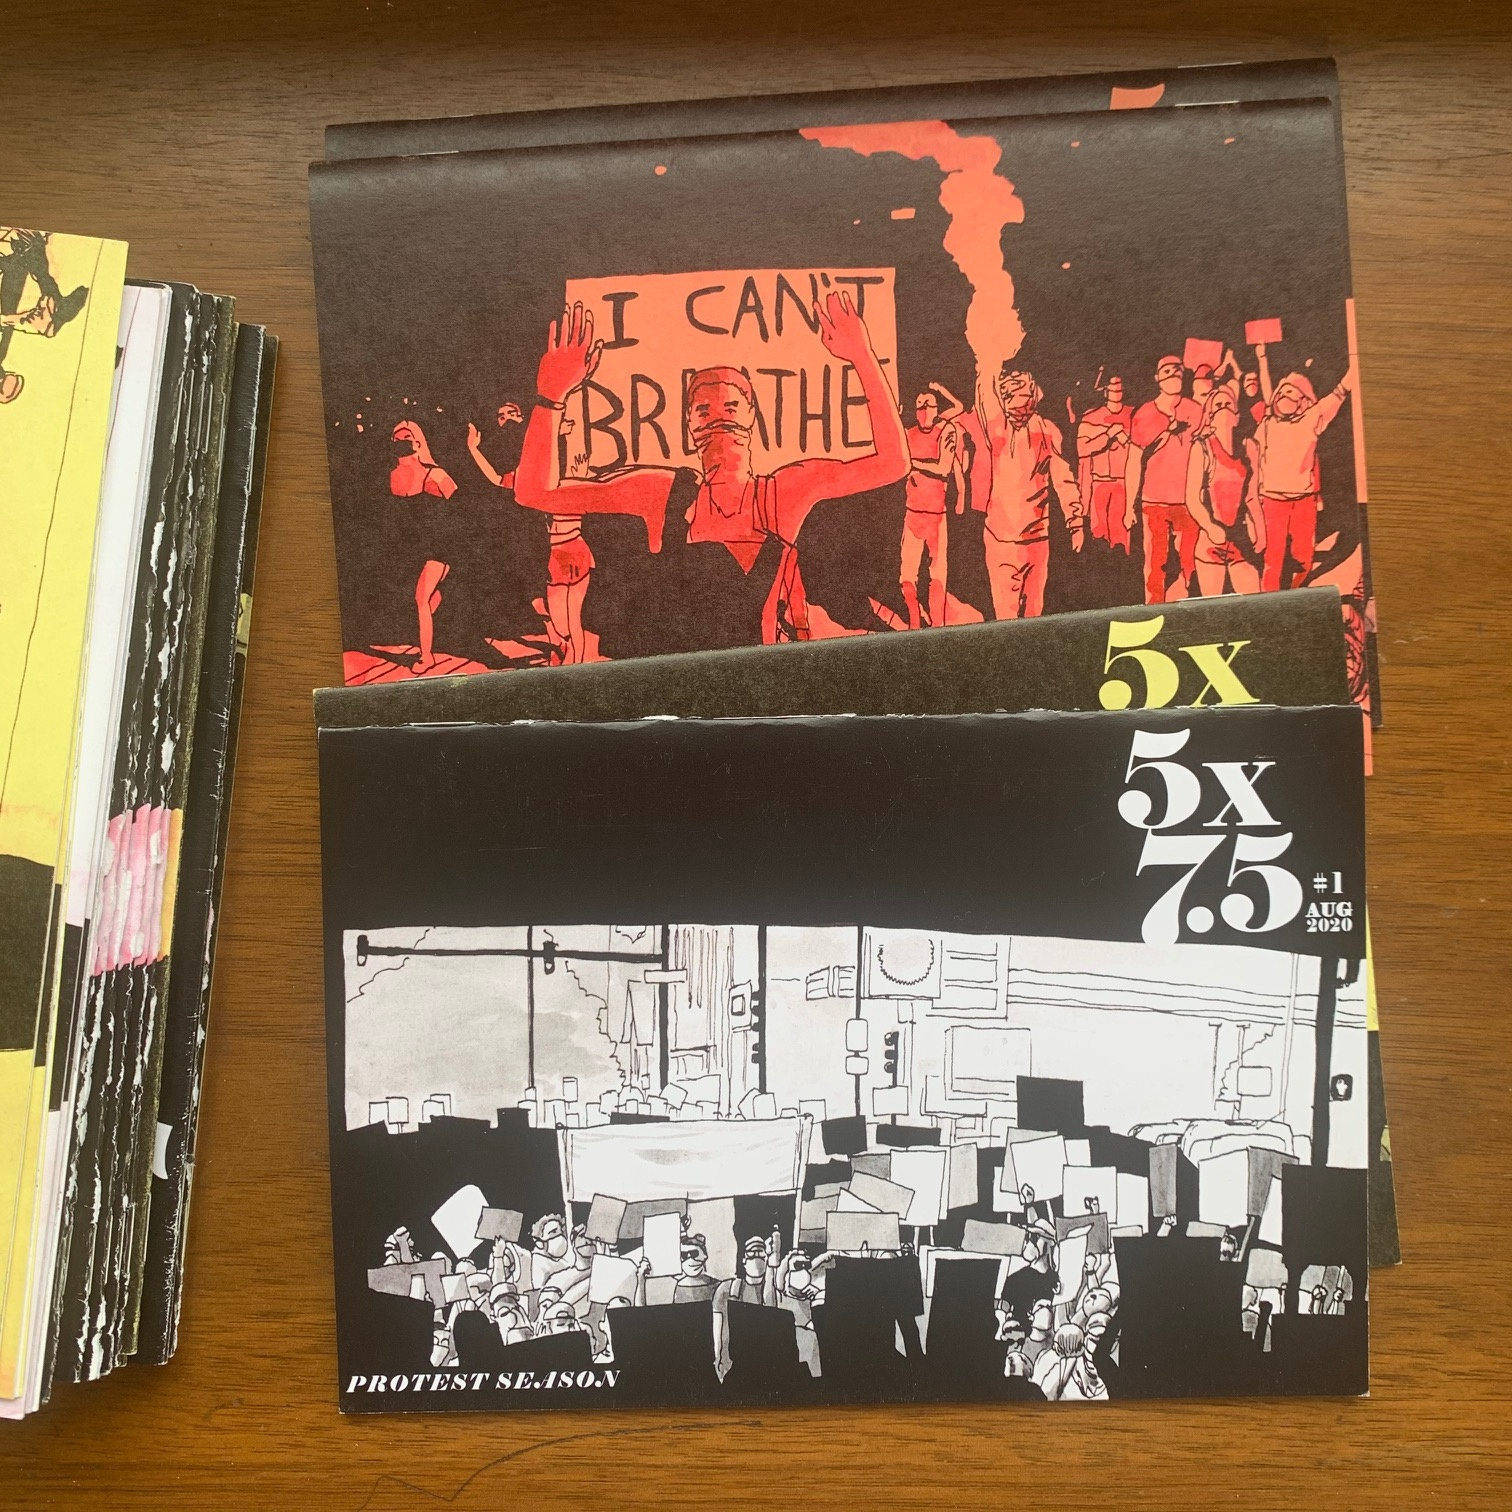 The first issue of Rolando Rodriguez's zine of protest photograph sketches, <i>Protest Season</i>.